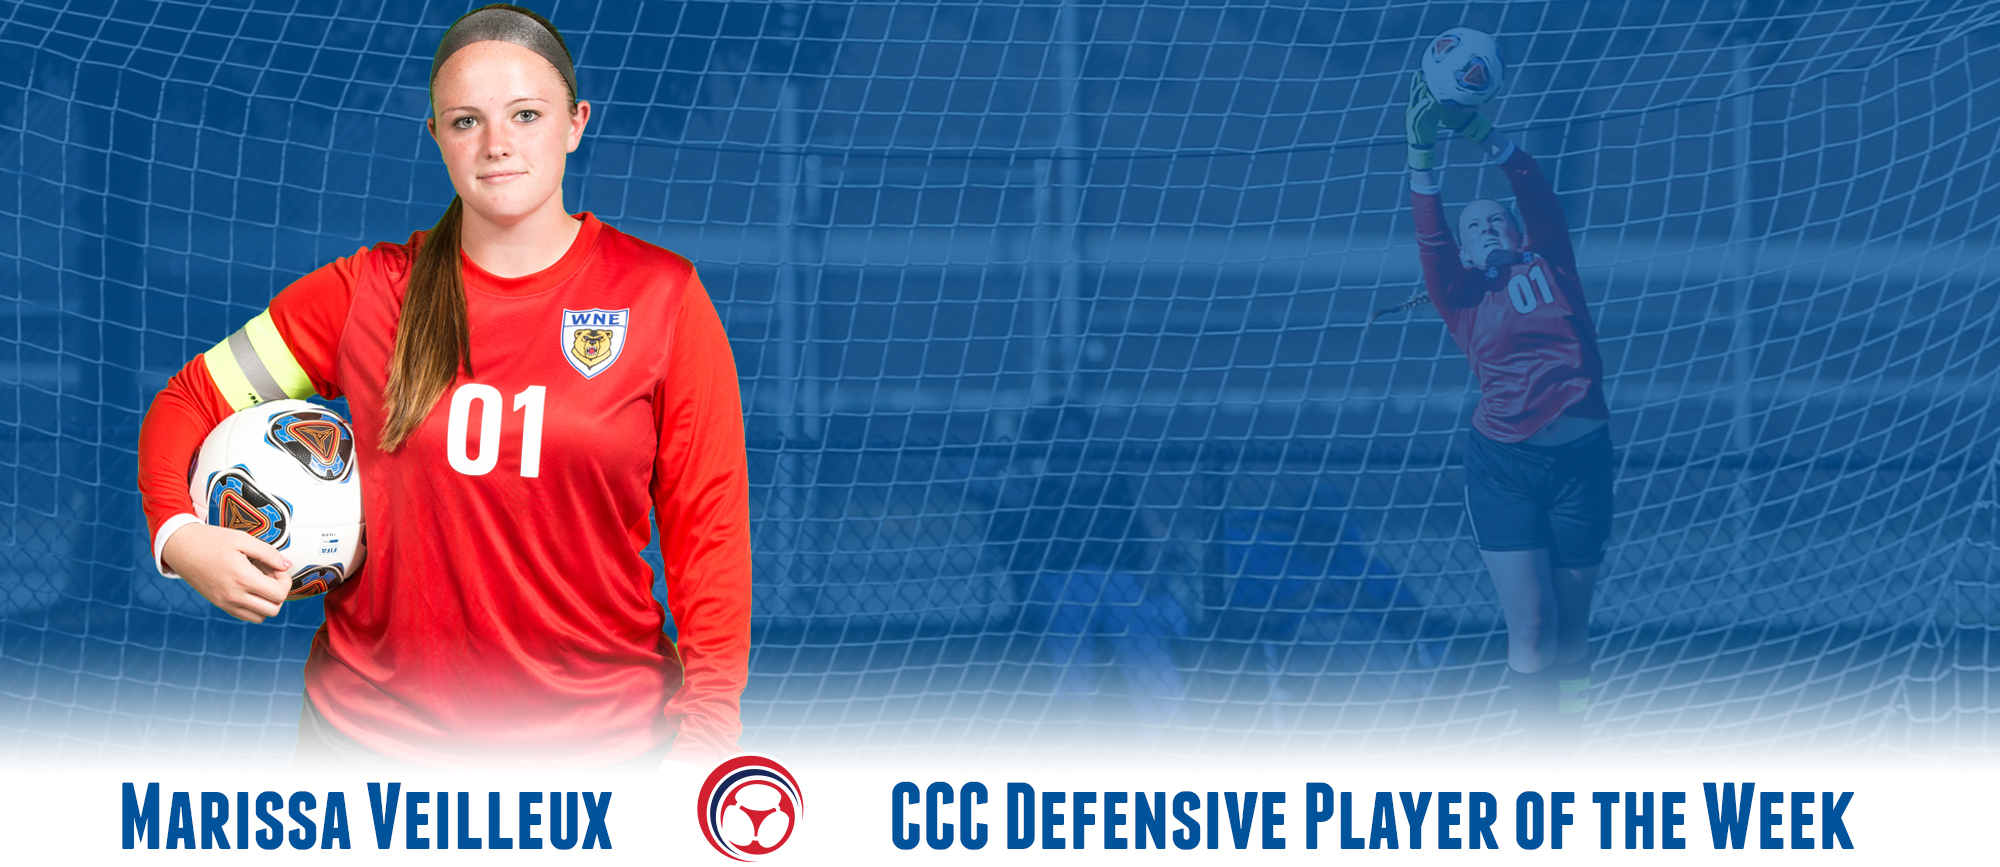 Marissa Veilleux Receives Second CCC Defensive Player of the Week Award